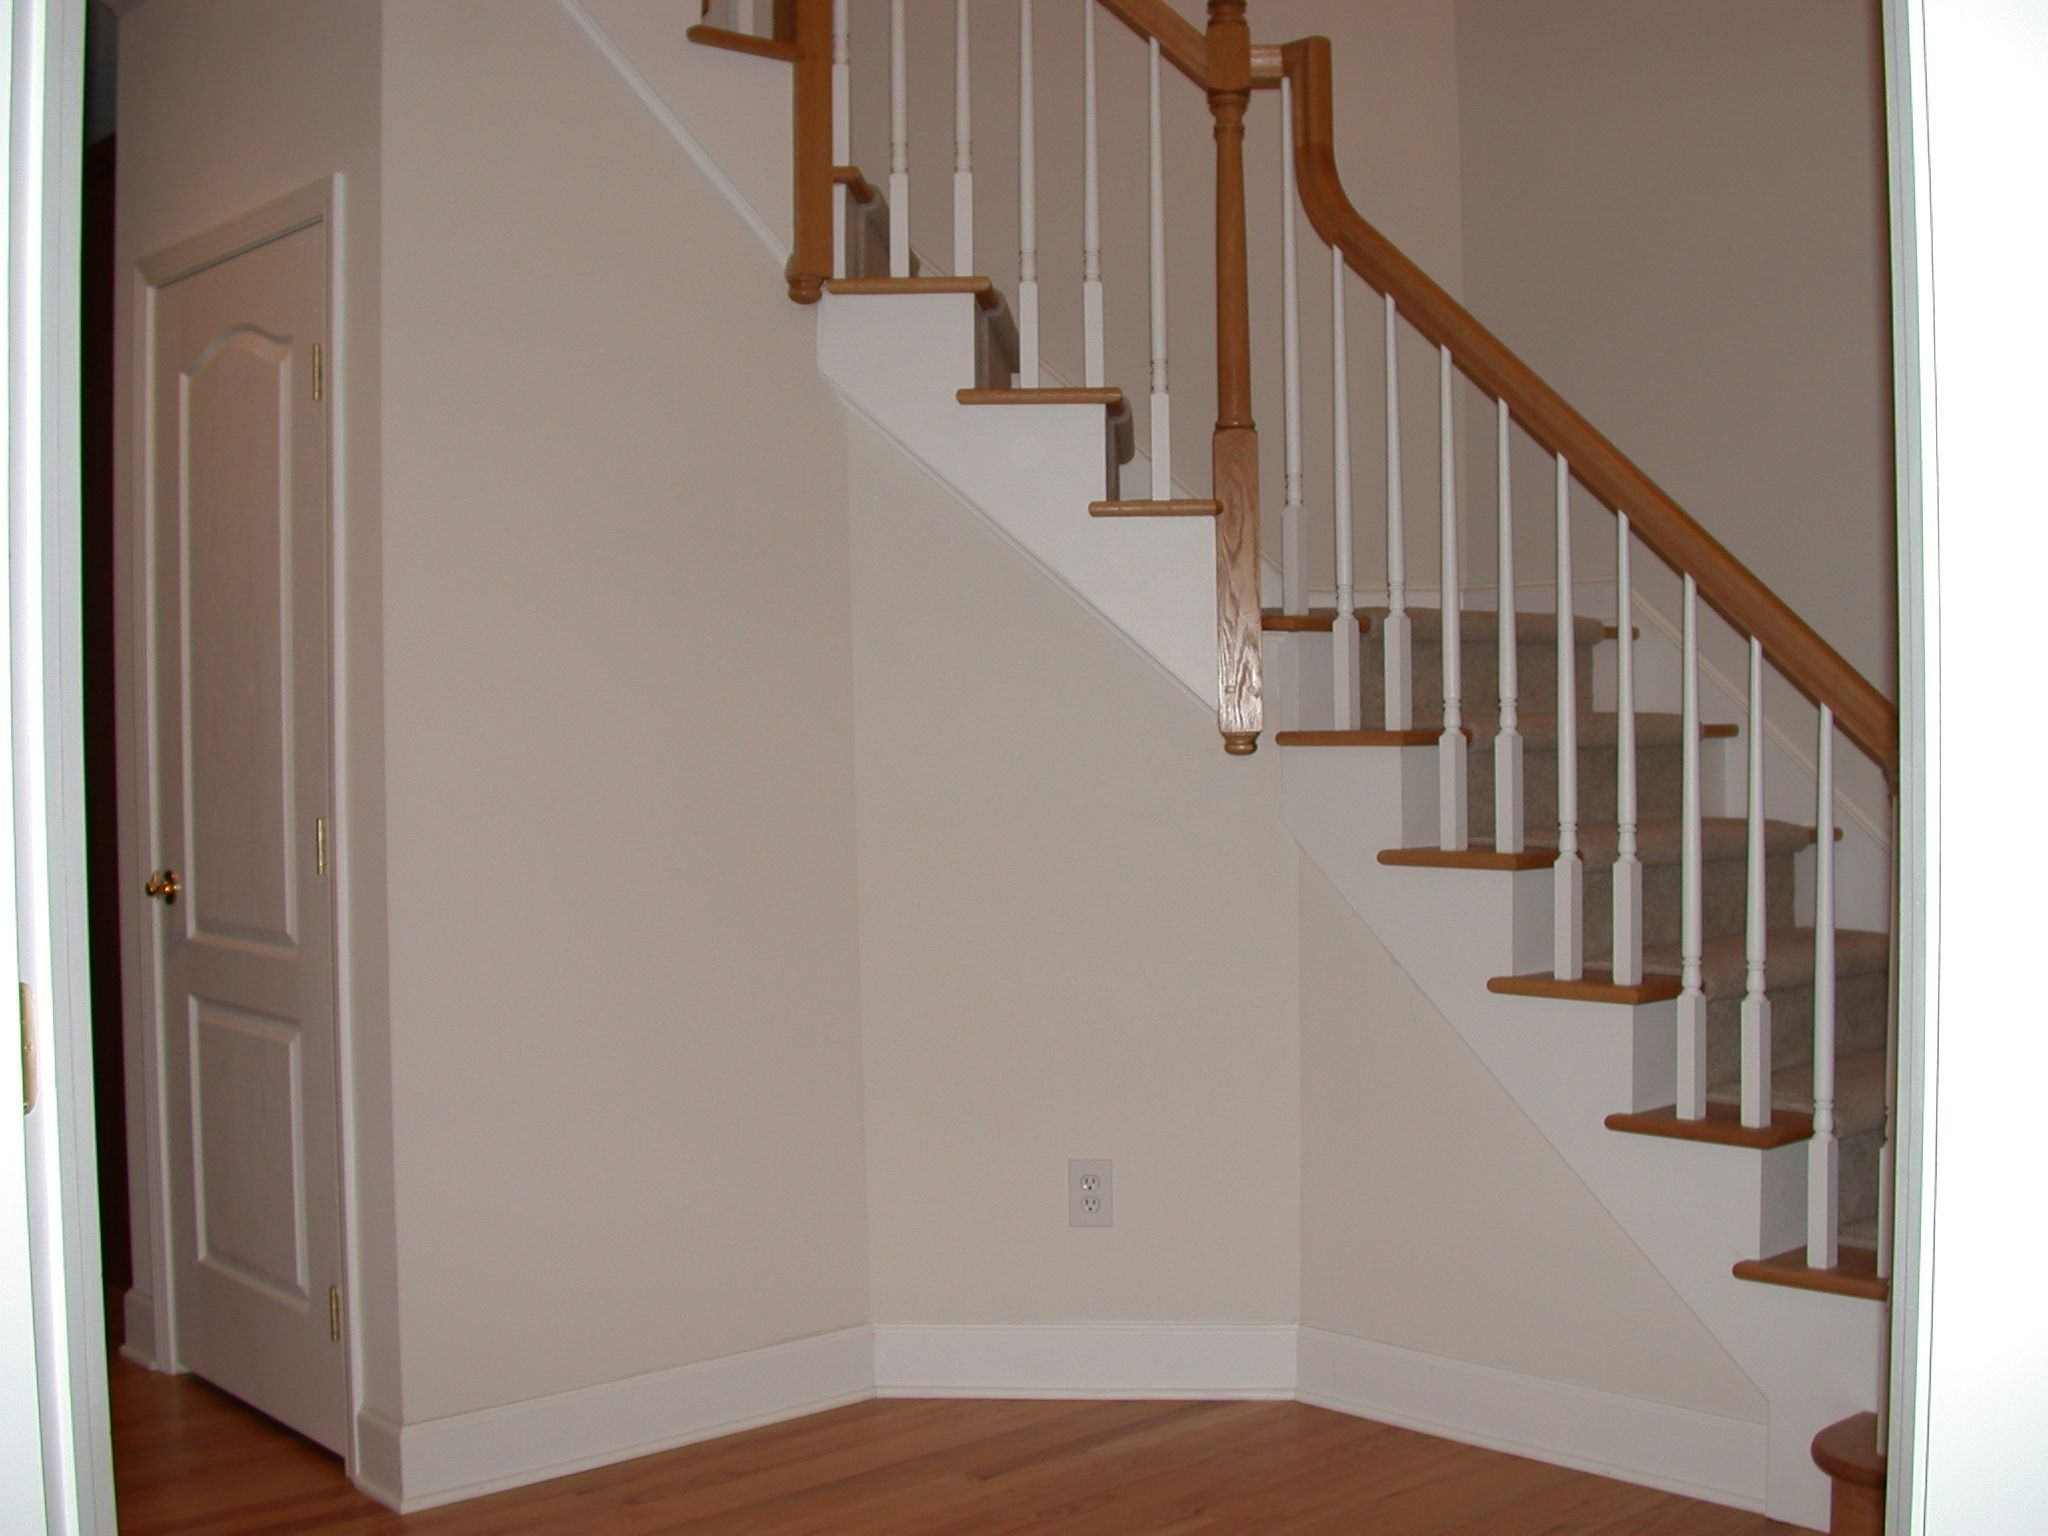 Charmant Stair Molding | Side Of Stairs Before Trim Molding Ideas, Carpet Stairs,  Banisters,